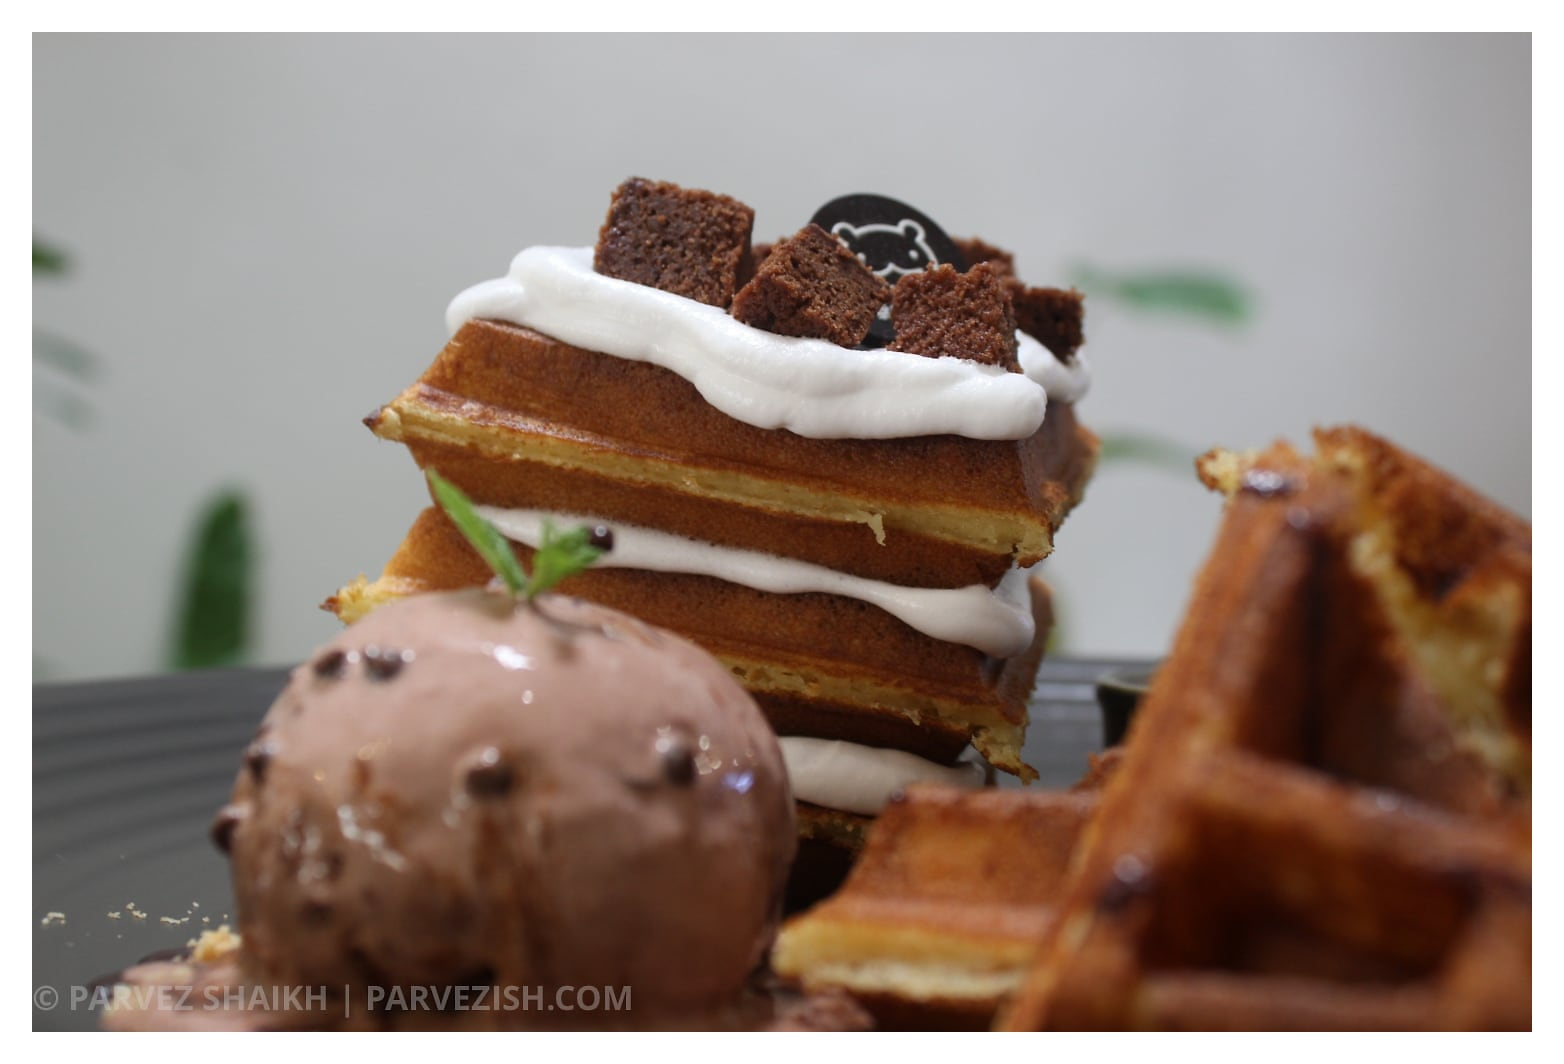 Chocolate Waffles at Miyakori Cafe Malacca